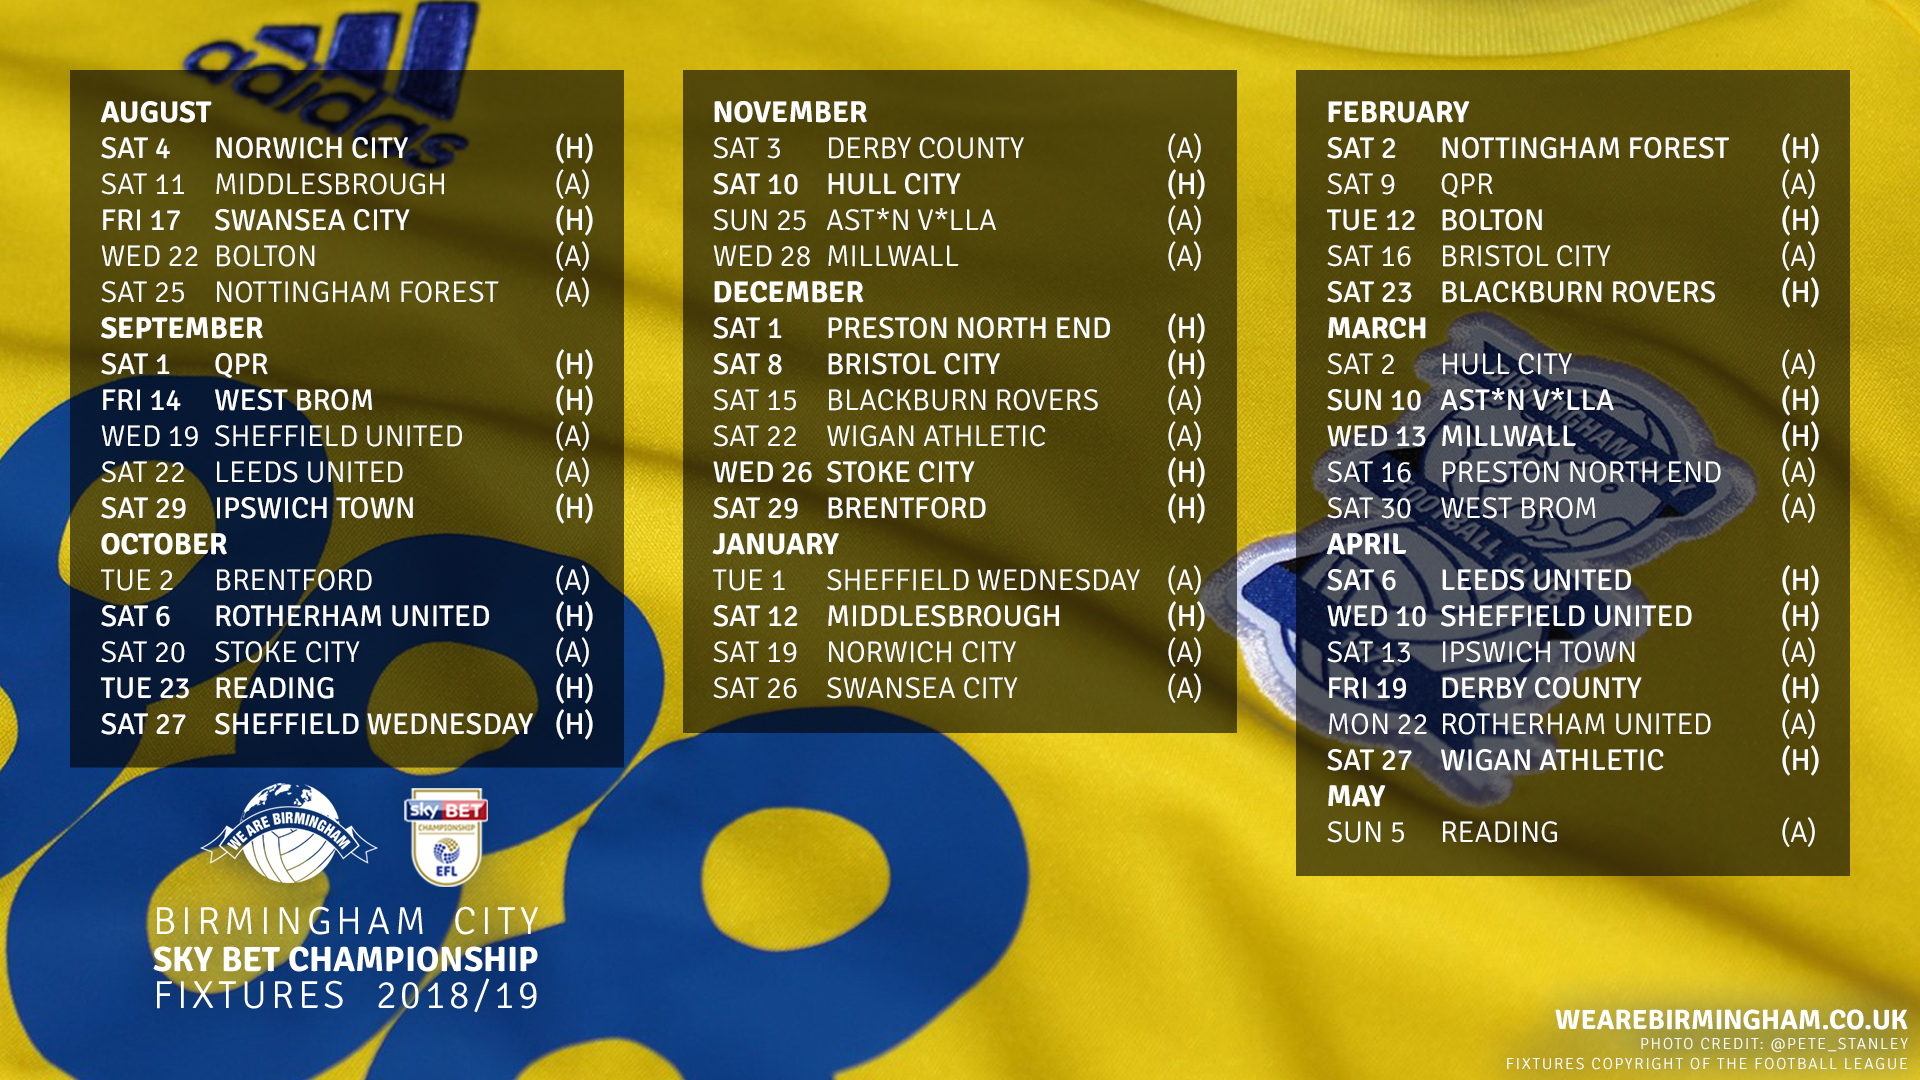 Birmingham City Fixture Wallpapers for the 2018-2019 Season